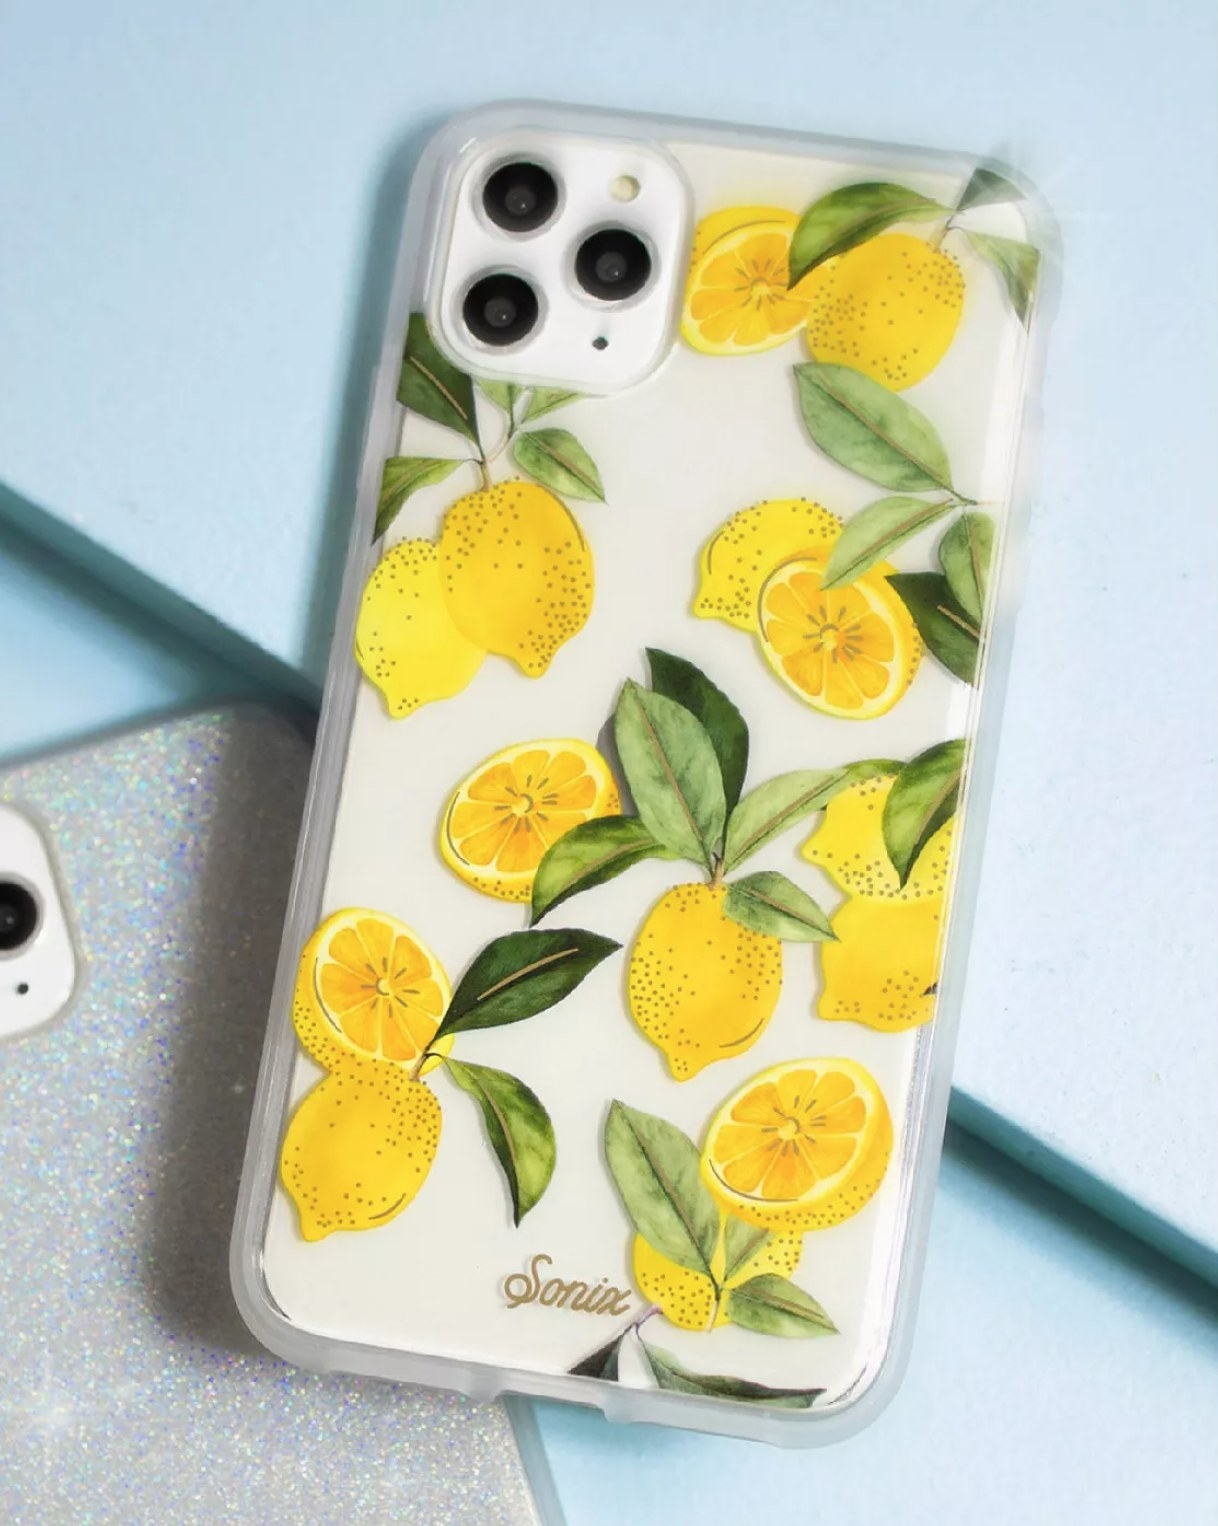 the clear phone case with lemons on it